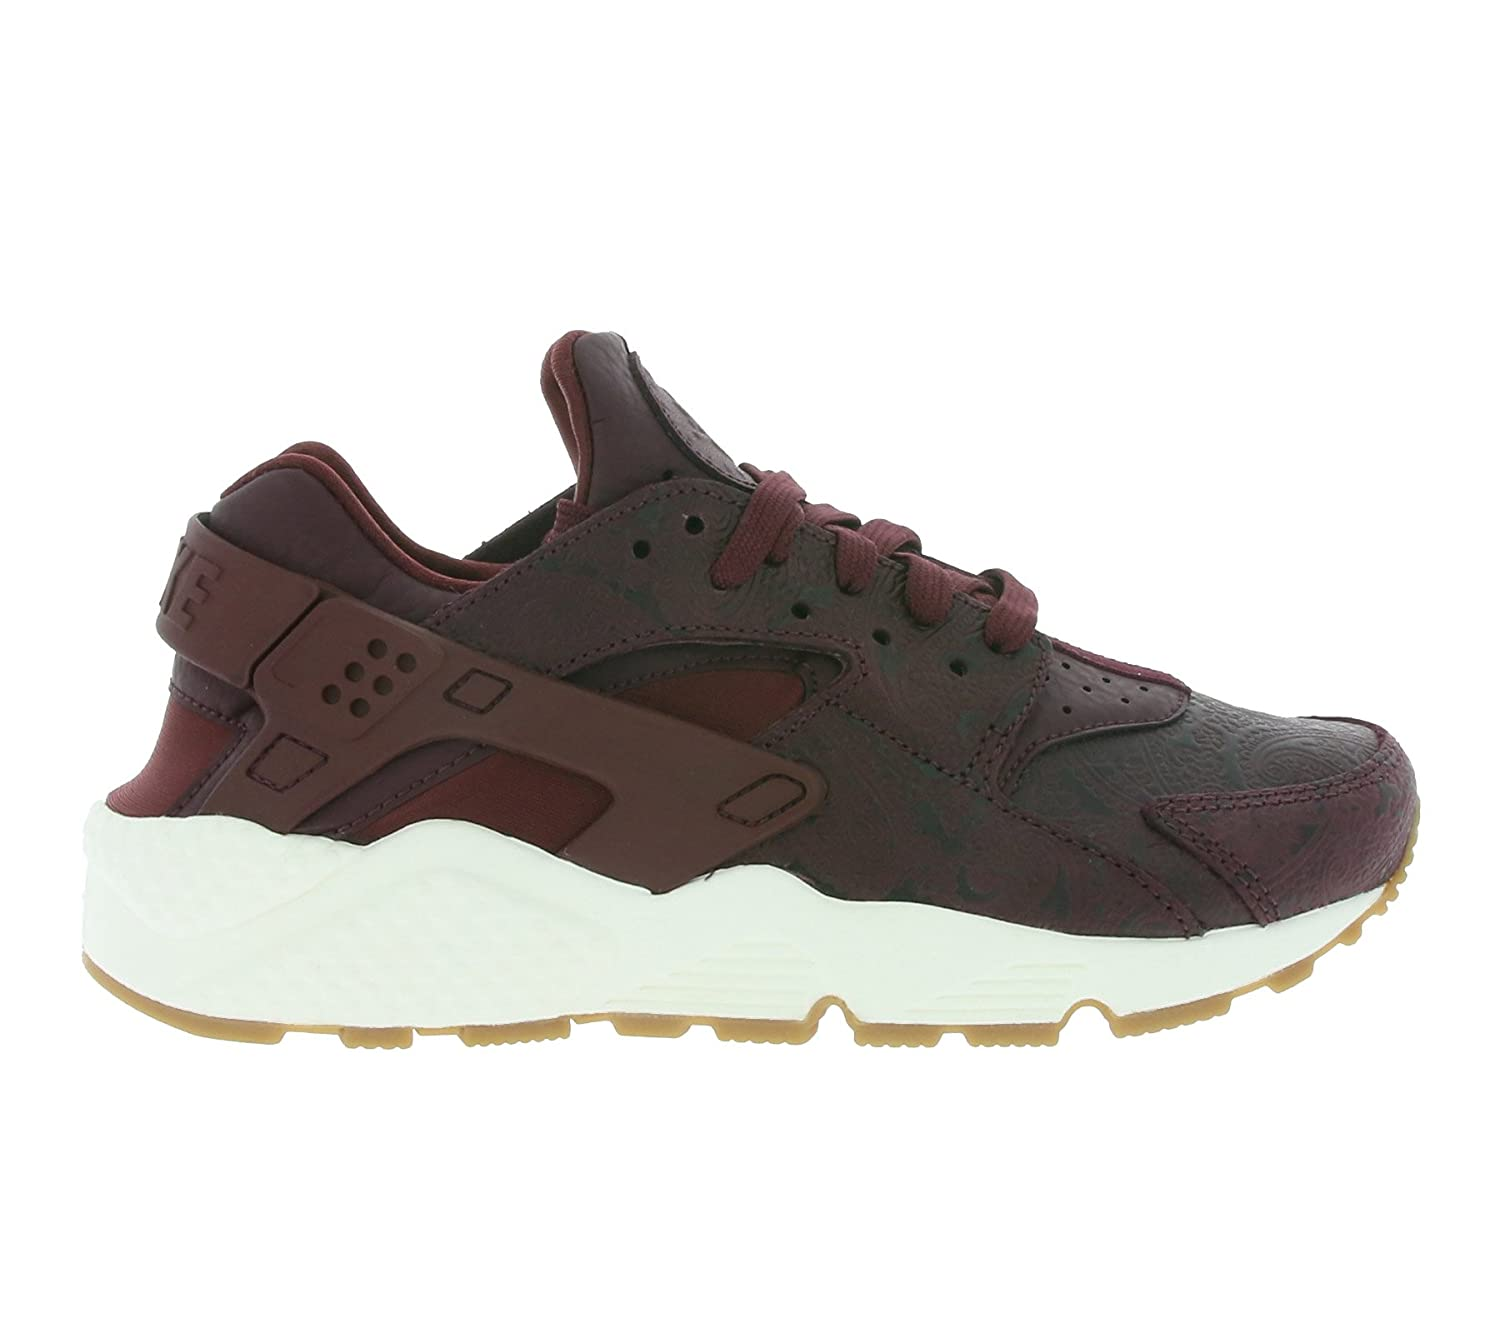 quite nice b585f ed6ac Amazon.com   Nike Air Huarache Premium Women s Shoes Night Maroon Night  Maroon-Sail 683818-600 (9.5 B(M) US)   Basketball